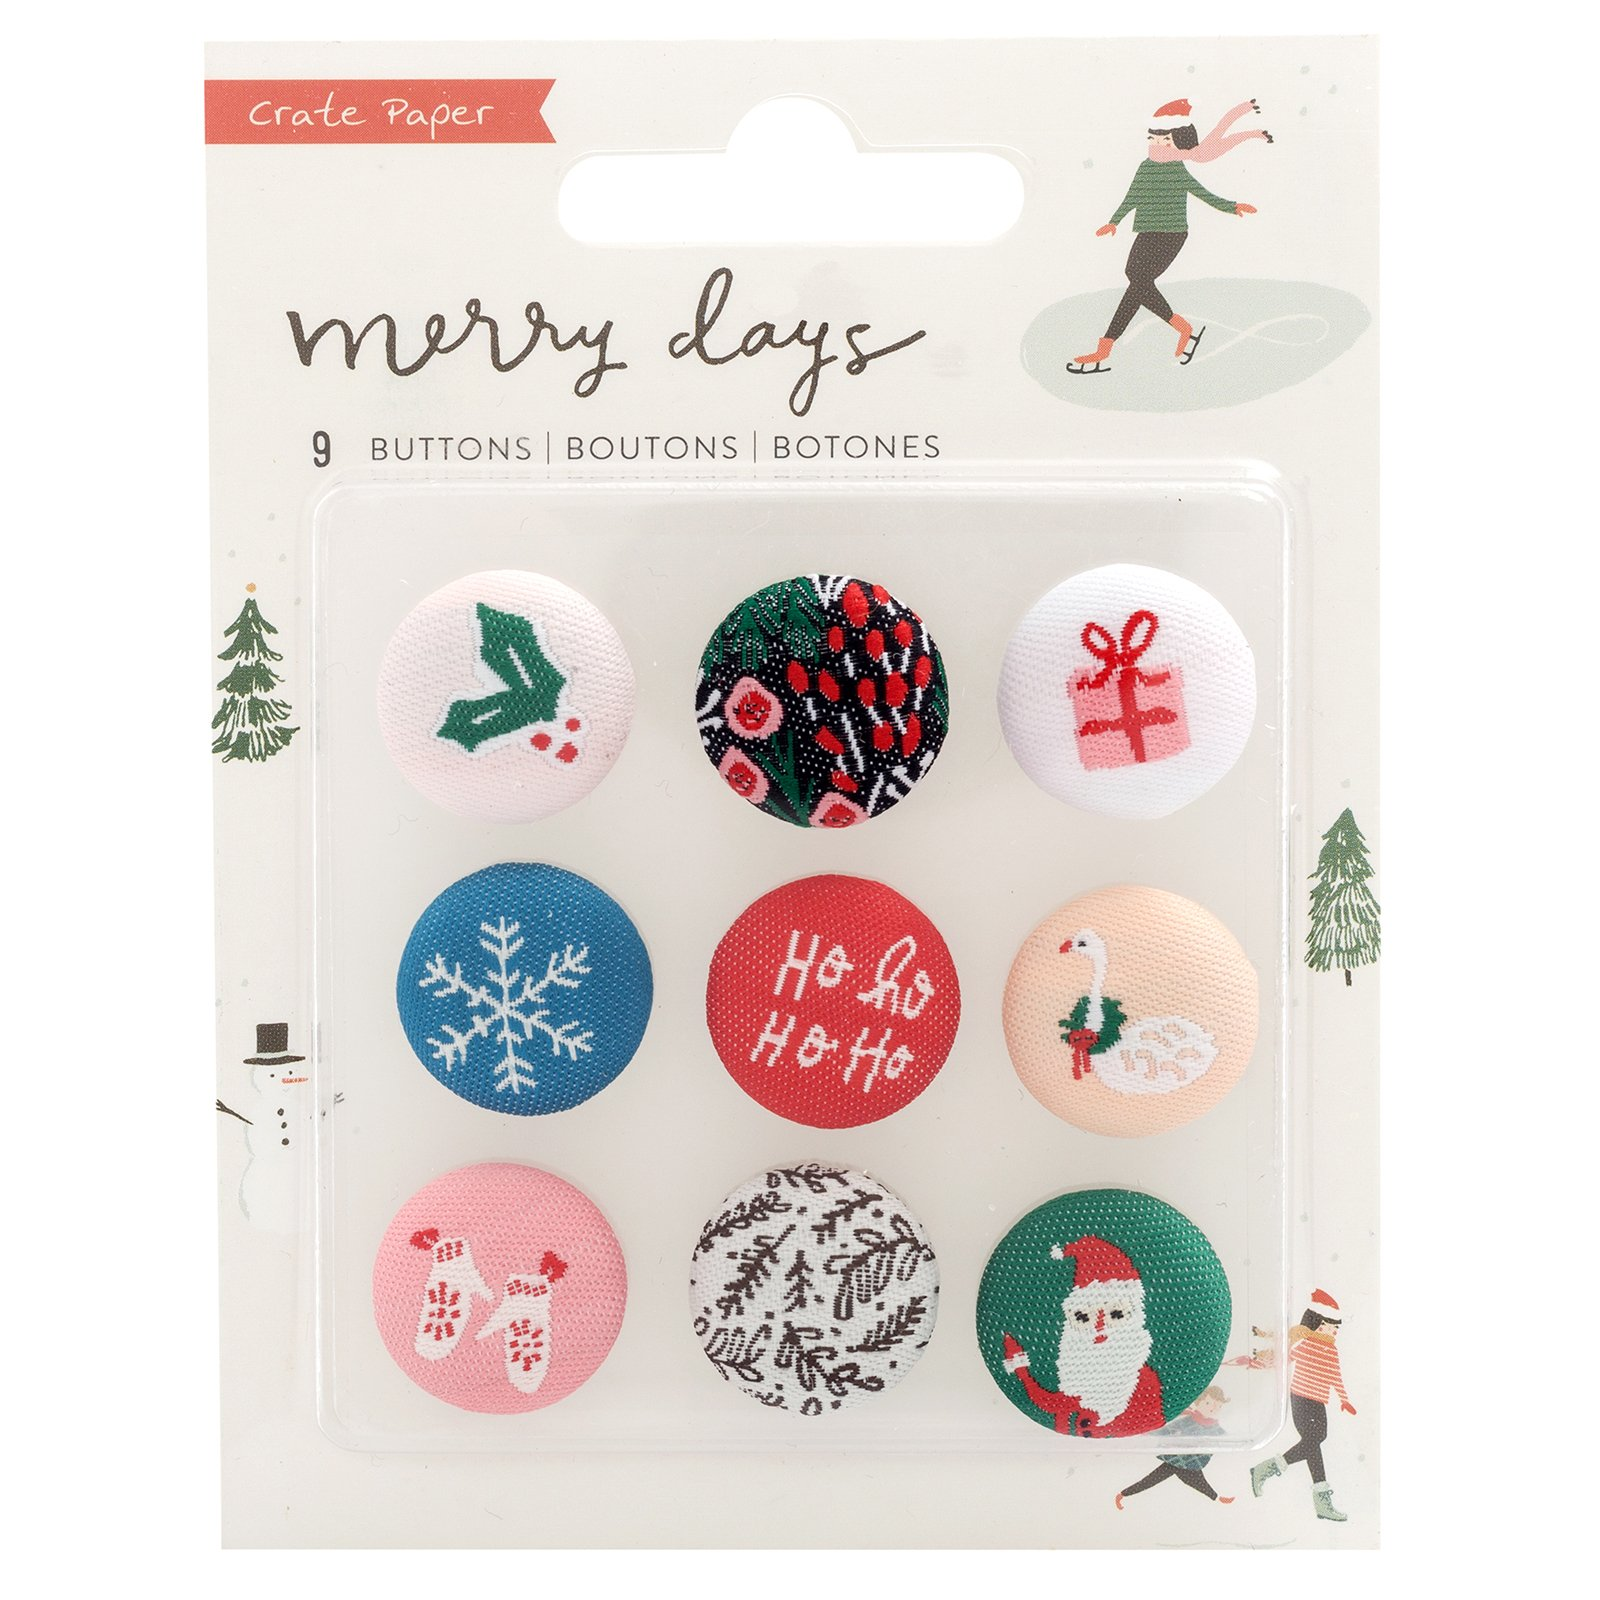 Crate Paper Merry Days Buttons